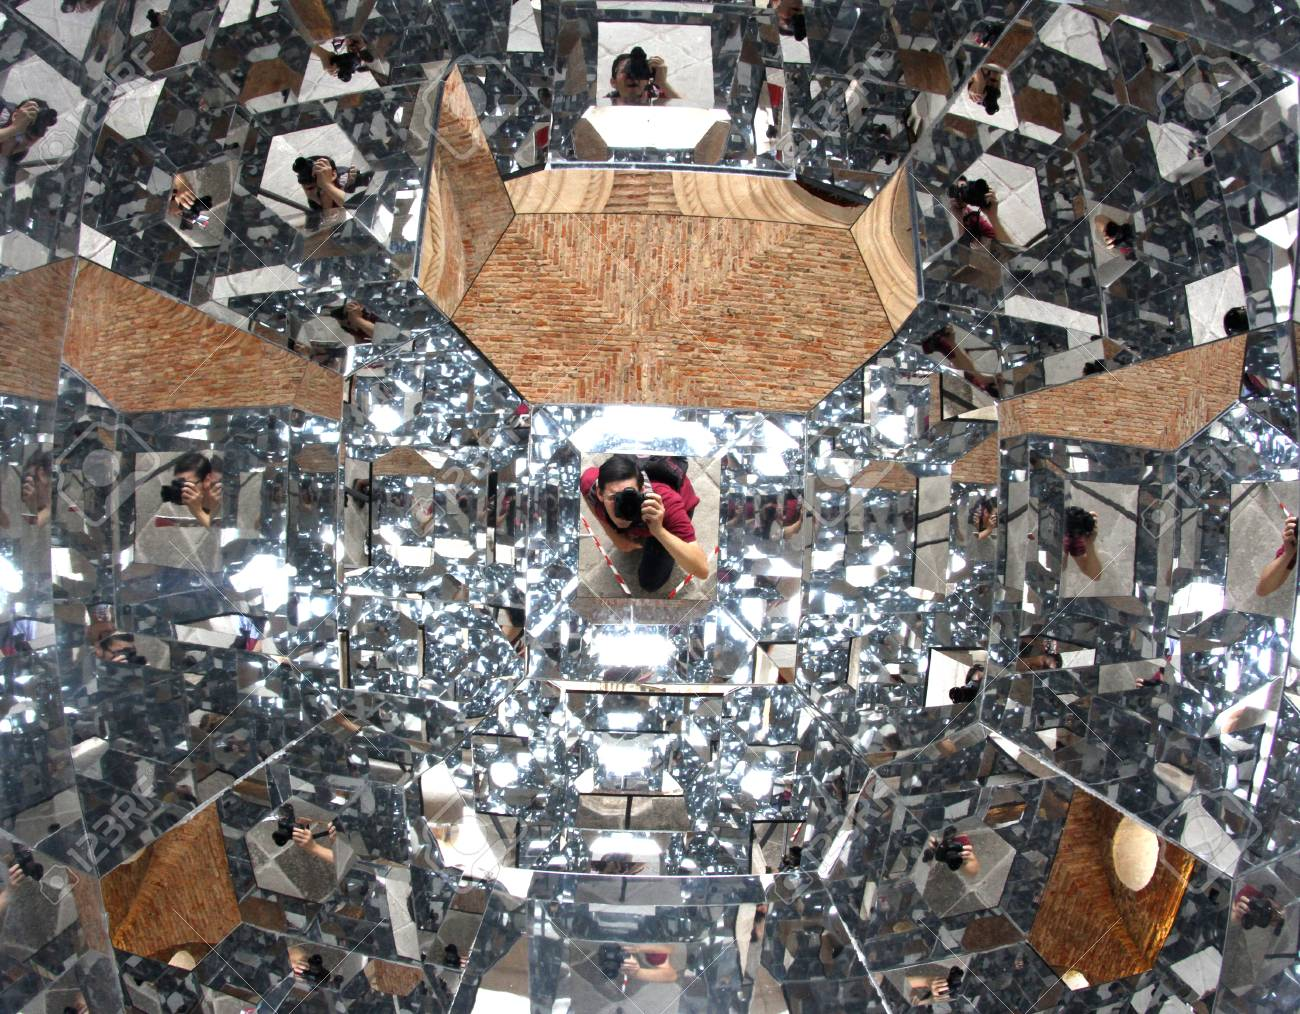 22511158-photographer-with-a-thousand-mirrors-while-running-a-self-timer-reflected-a-thousand-times.jpg